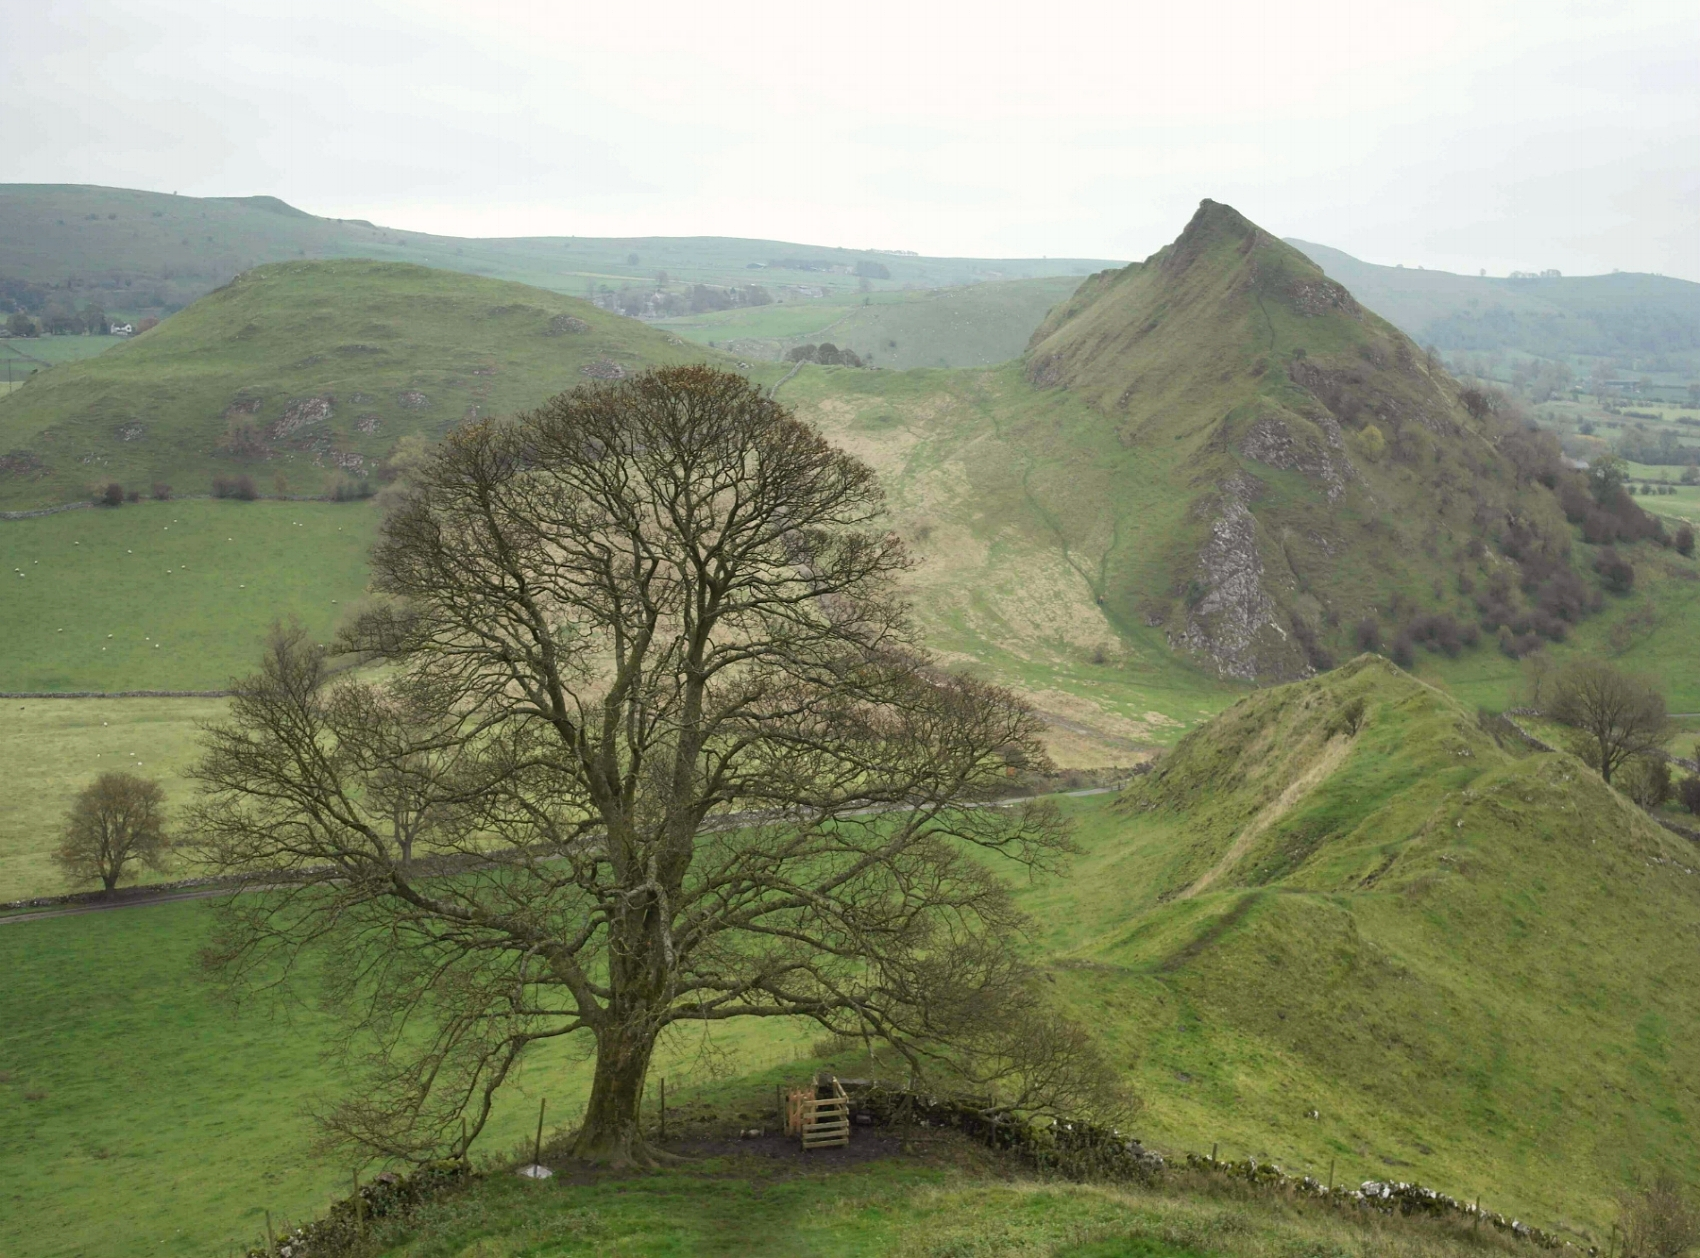 What a great view it is. Looking back towards (the smaller) Parkhouse Hill, as you slowly climb up the steepest part of Chrome Hill.